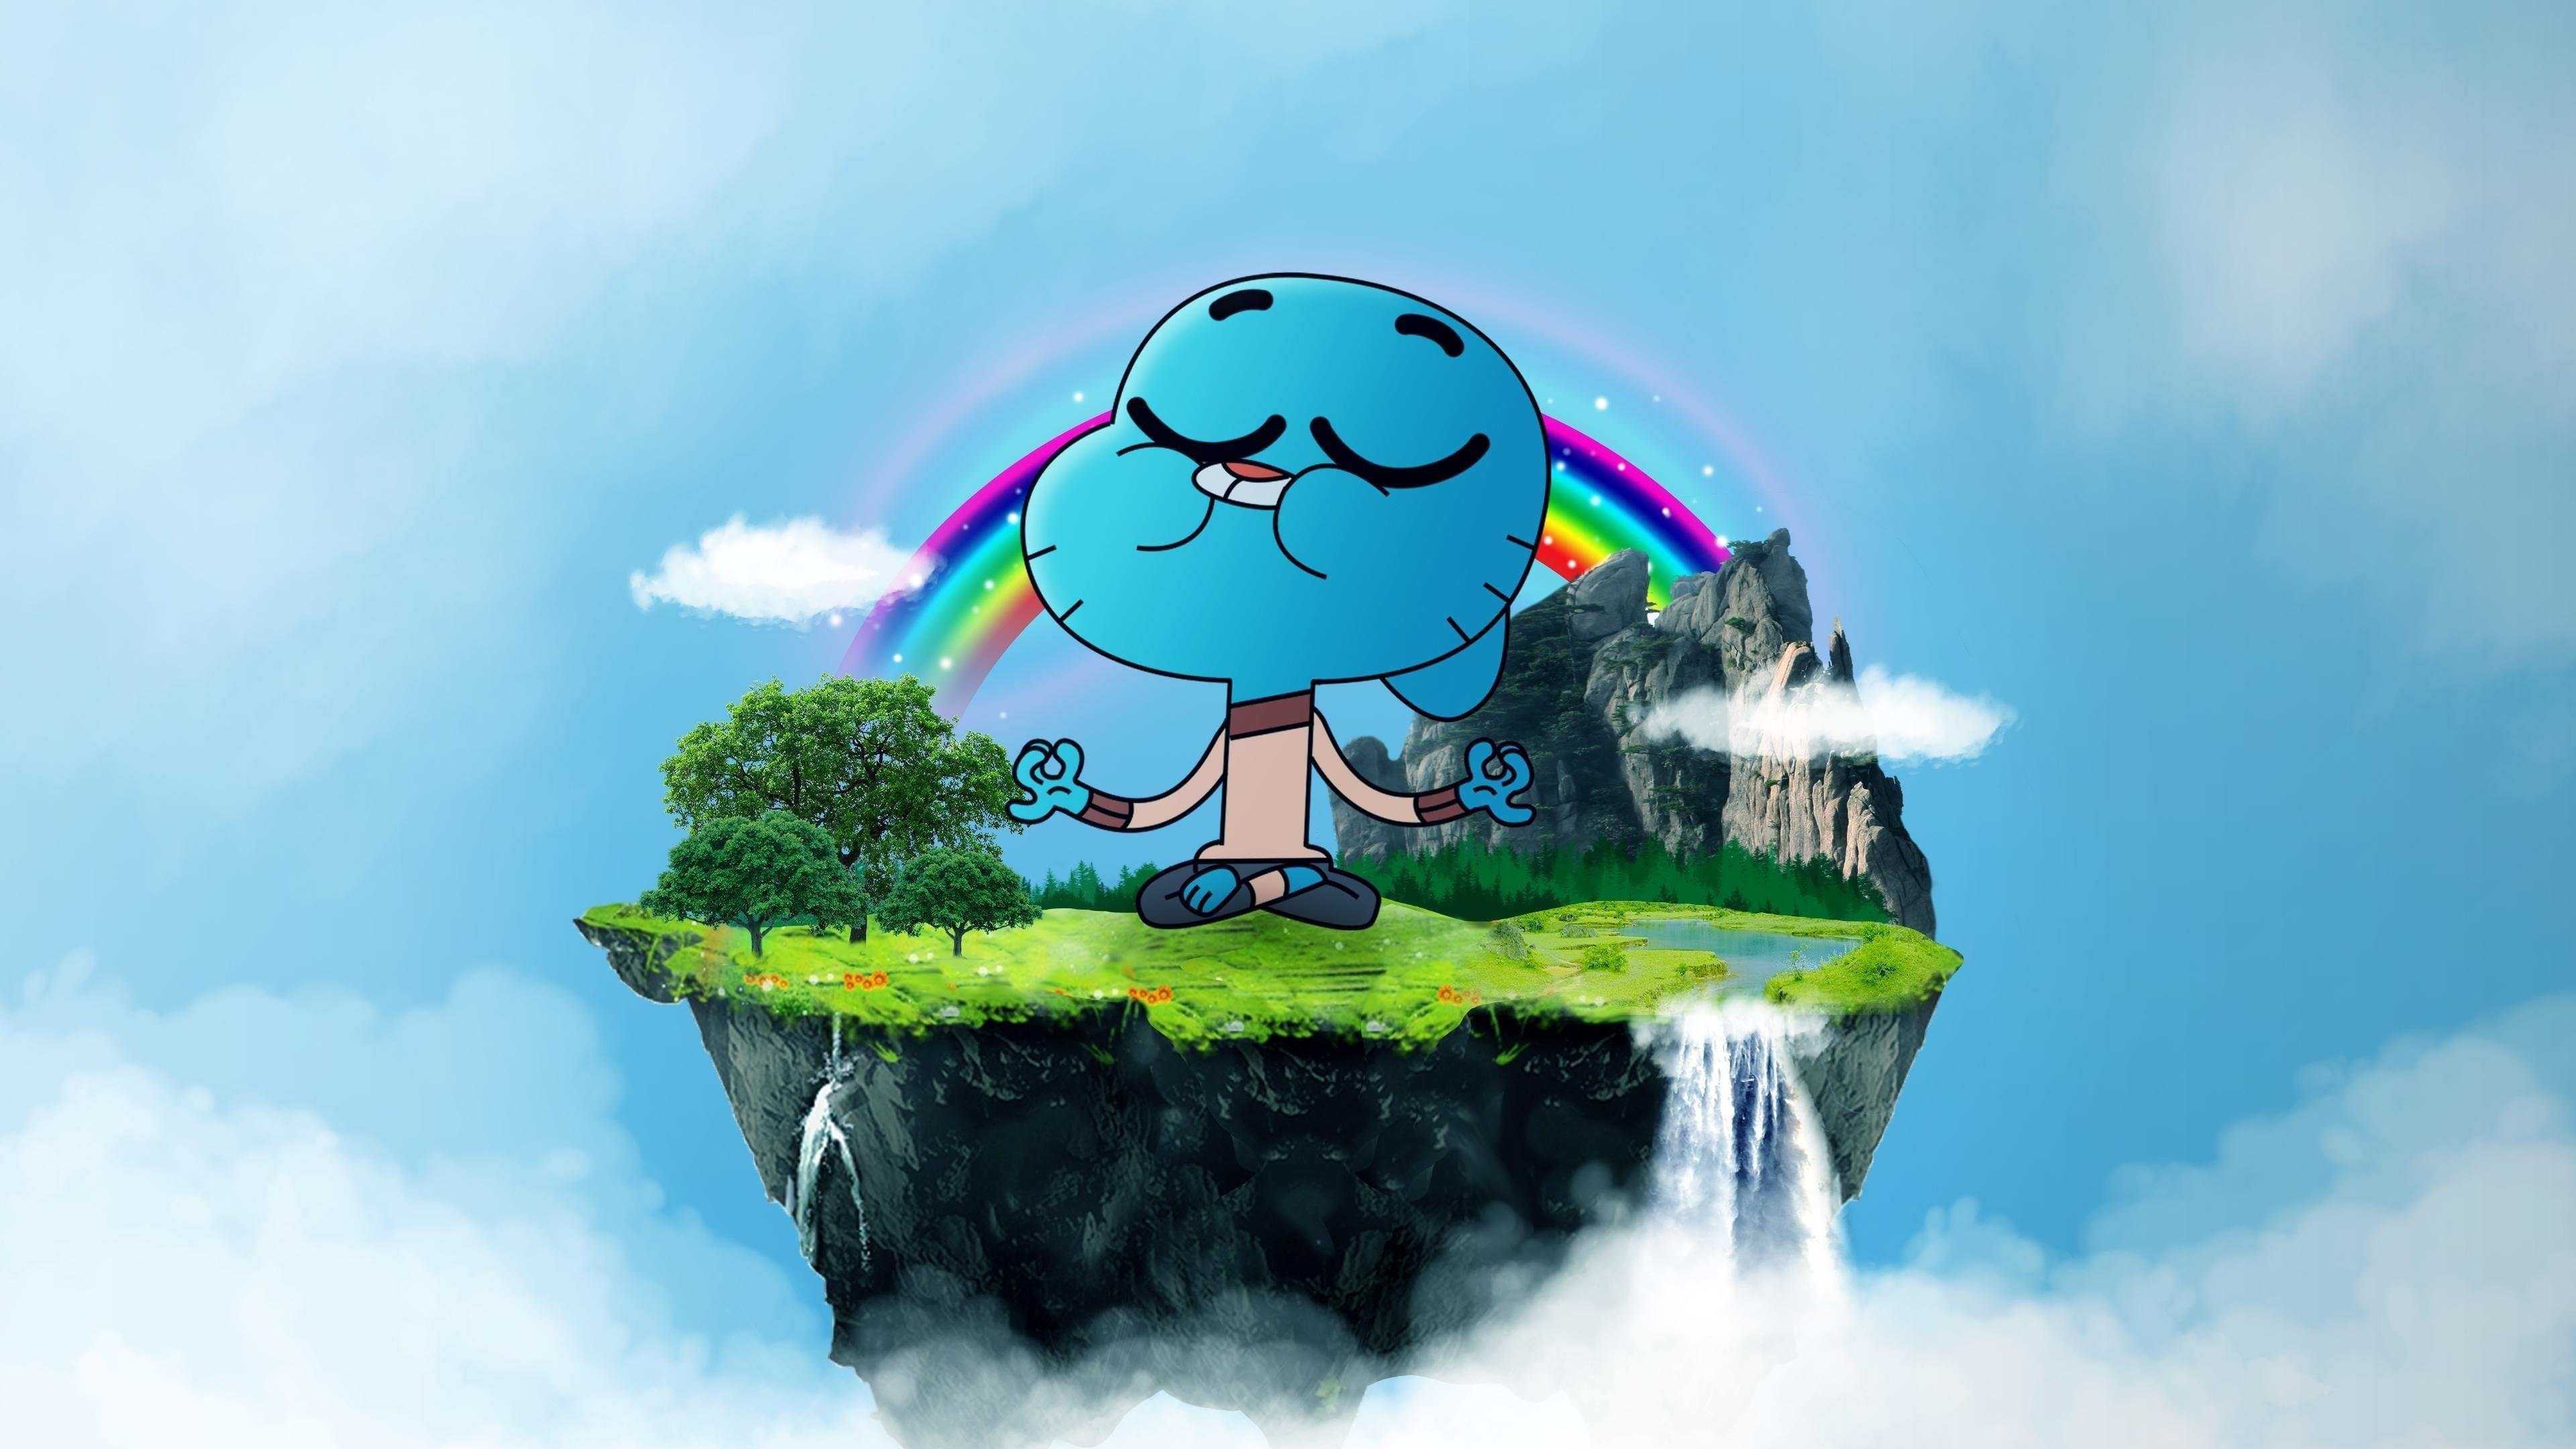 World Of Gumball best background